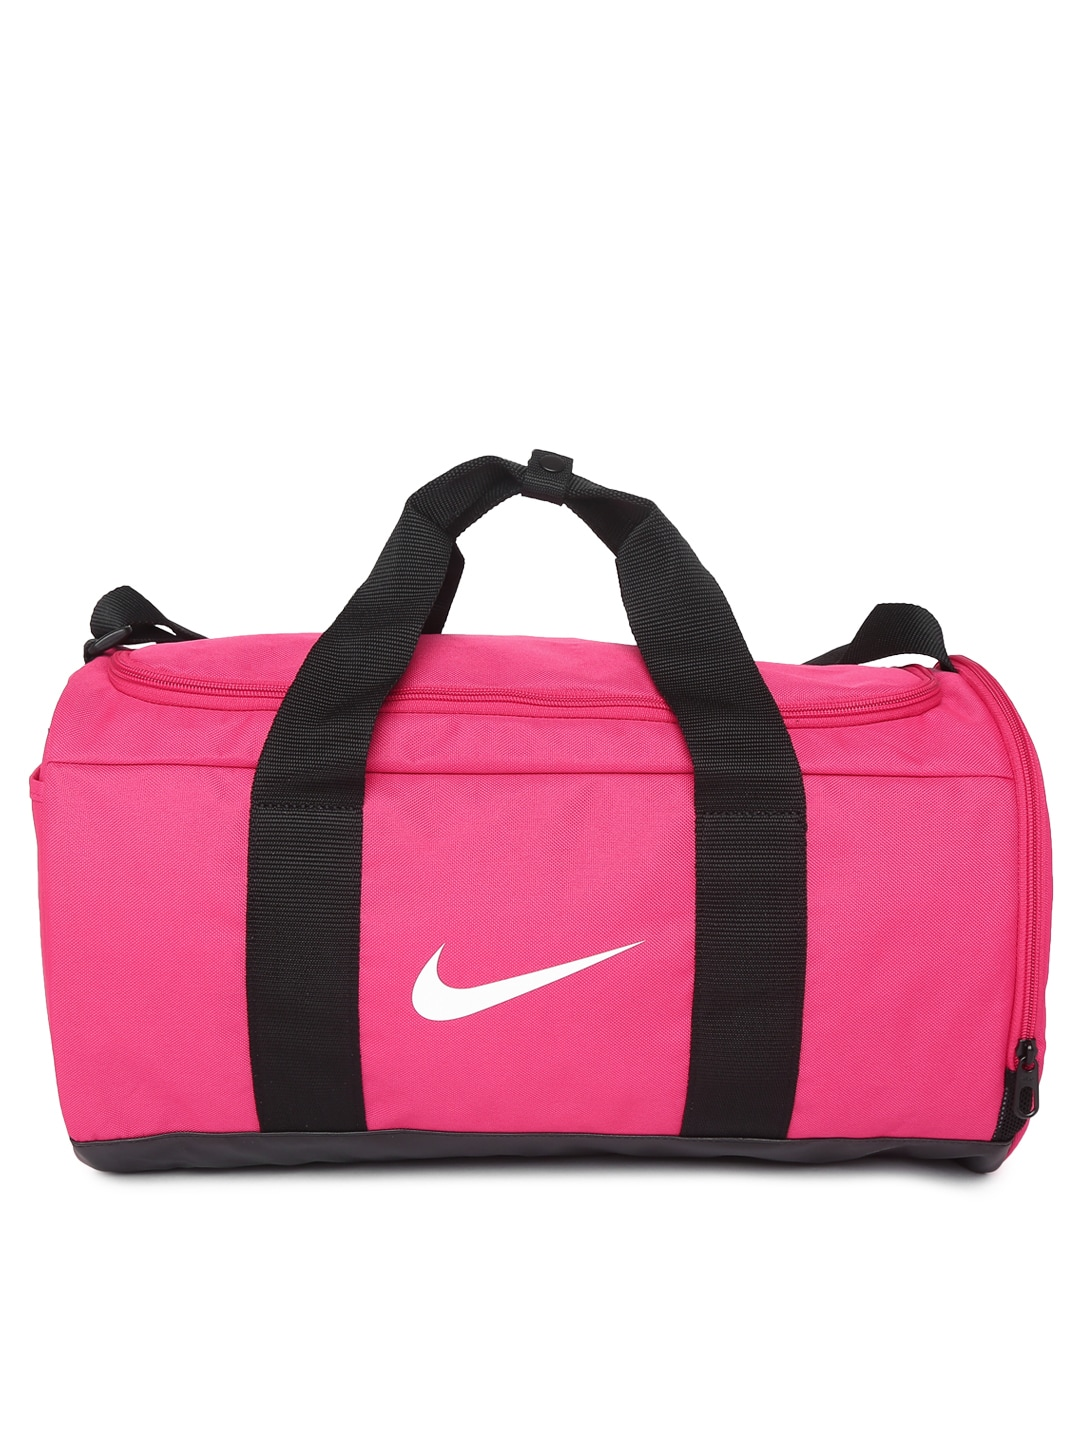 5d6659f4e088 Duffle Bags - Buy Branded Duffle Bags Online in India